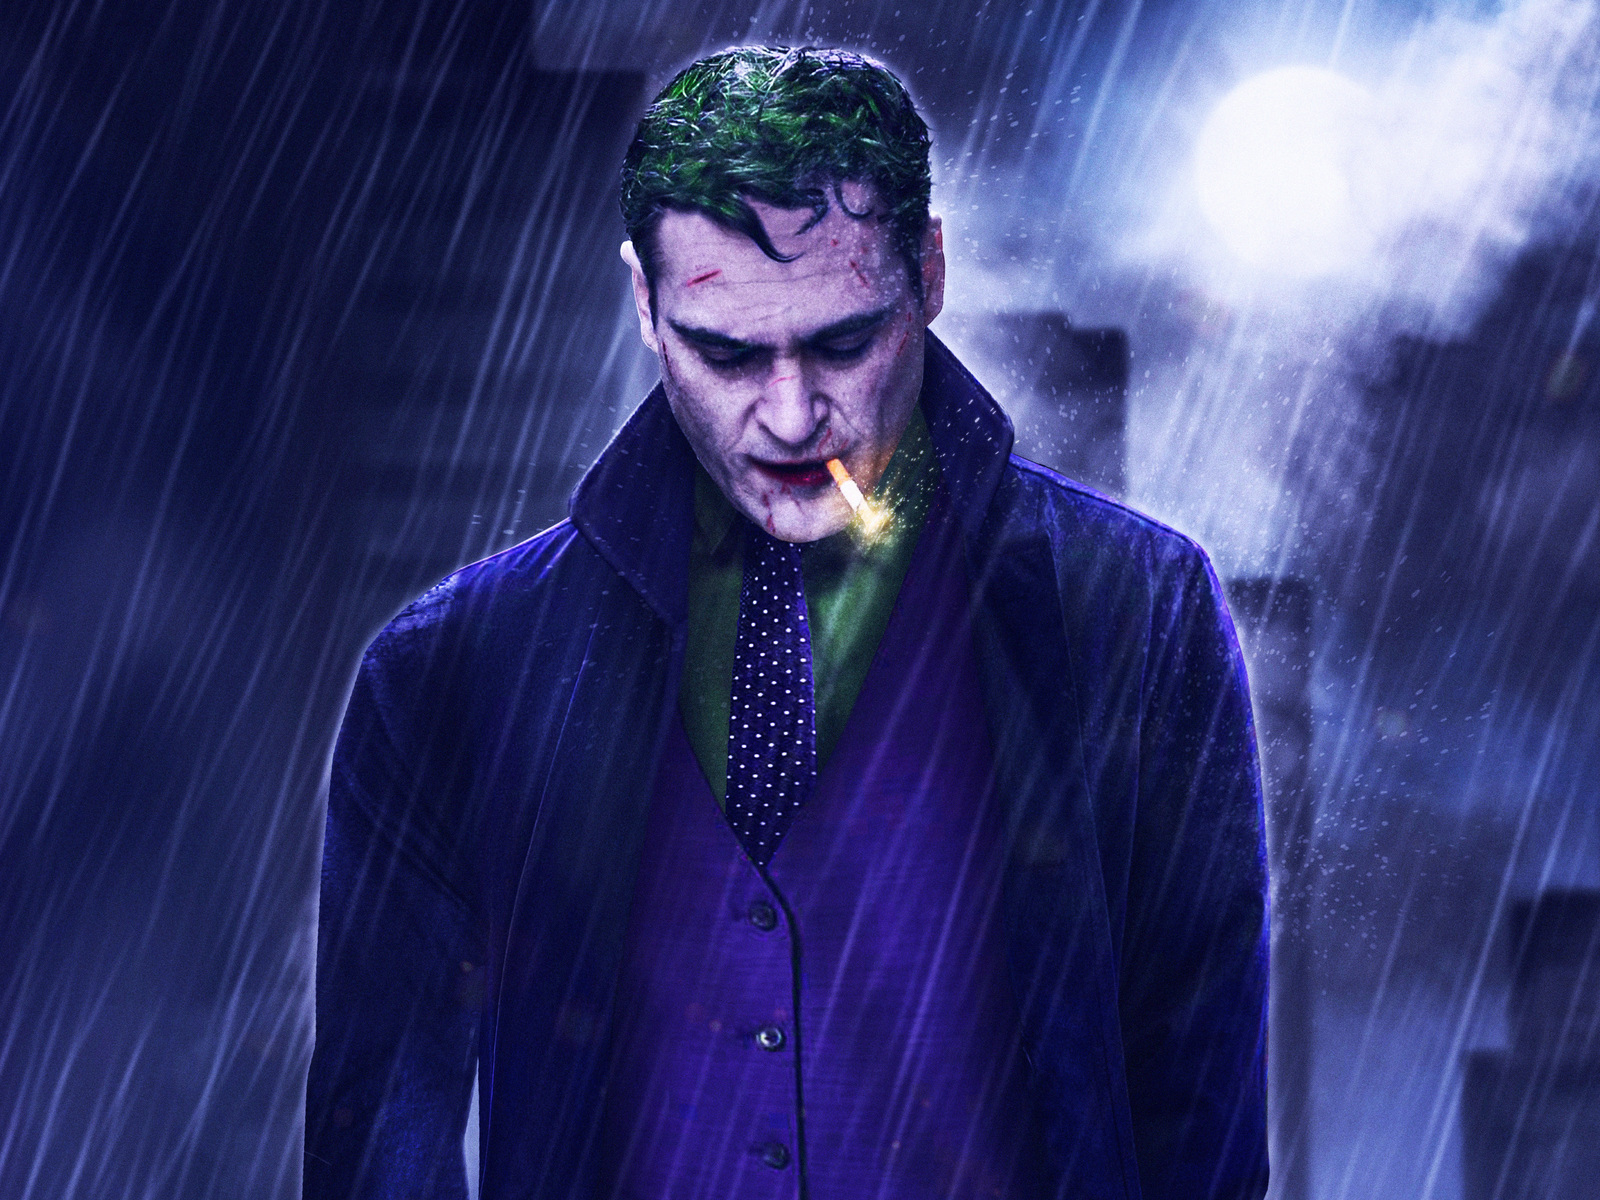 1600x1200 joaquin phoenix joker 2019 movie 5k 1600x1200 for Joker immagini hd